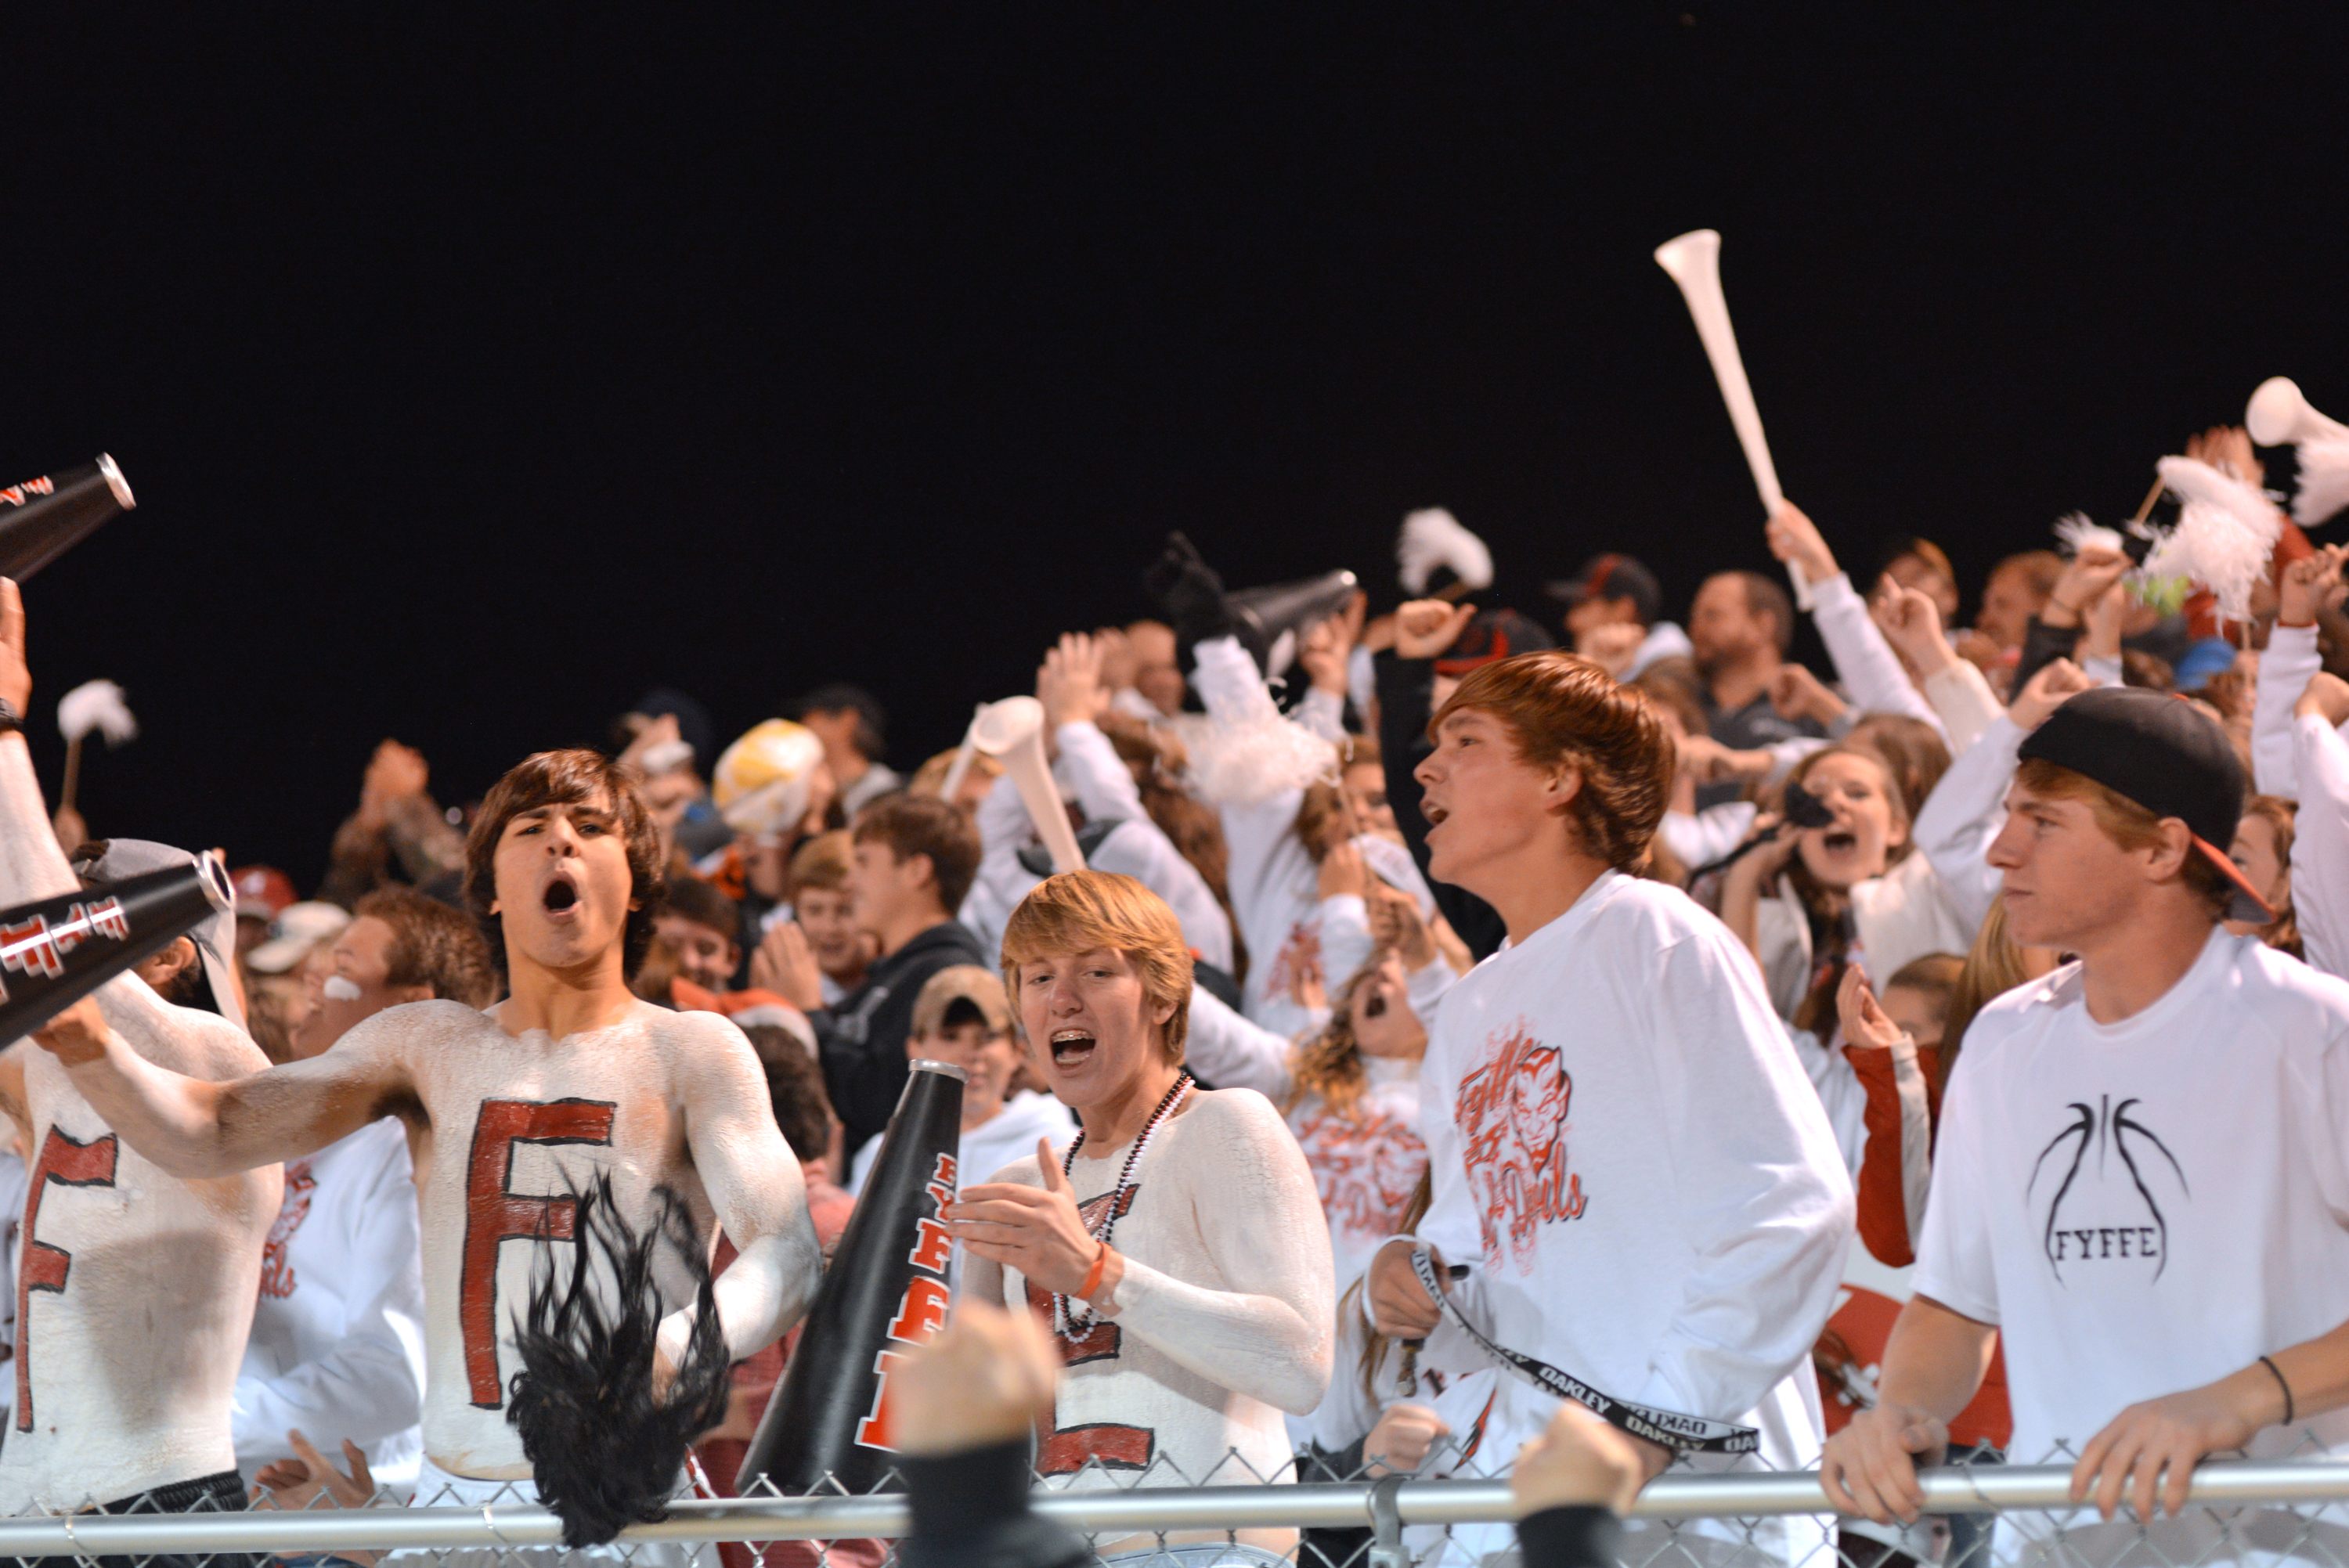 Another Rivalry Win for Fyffe Red Devils